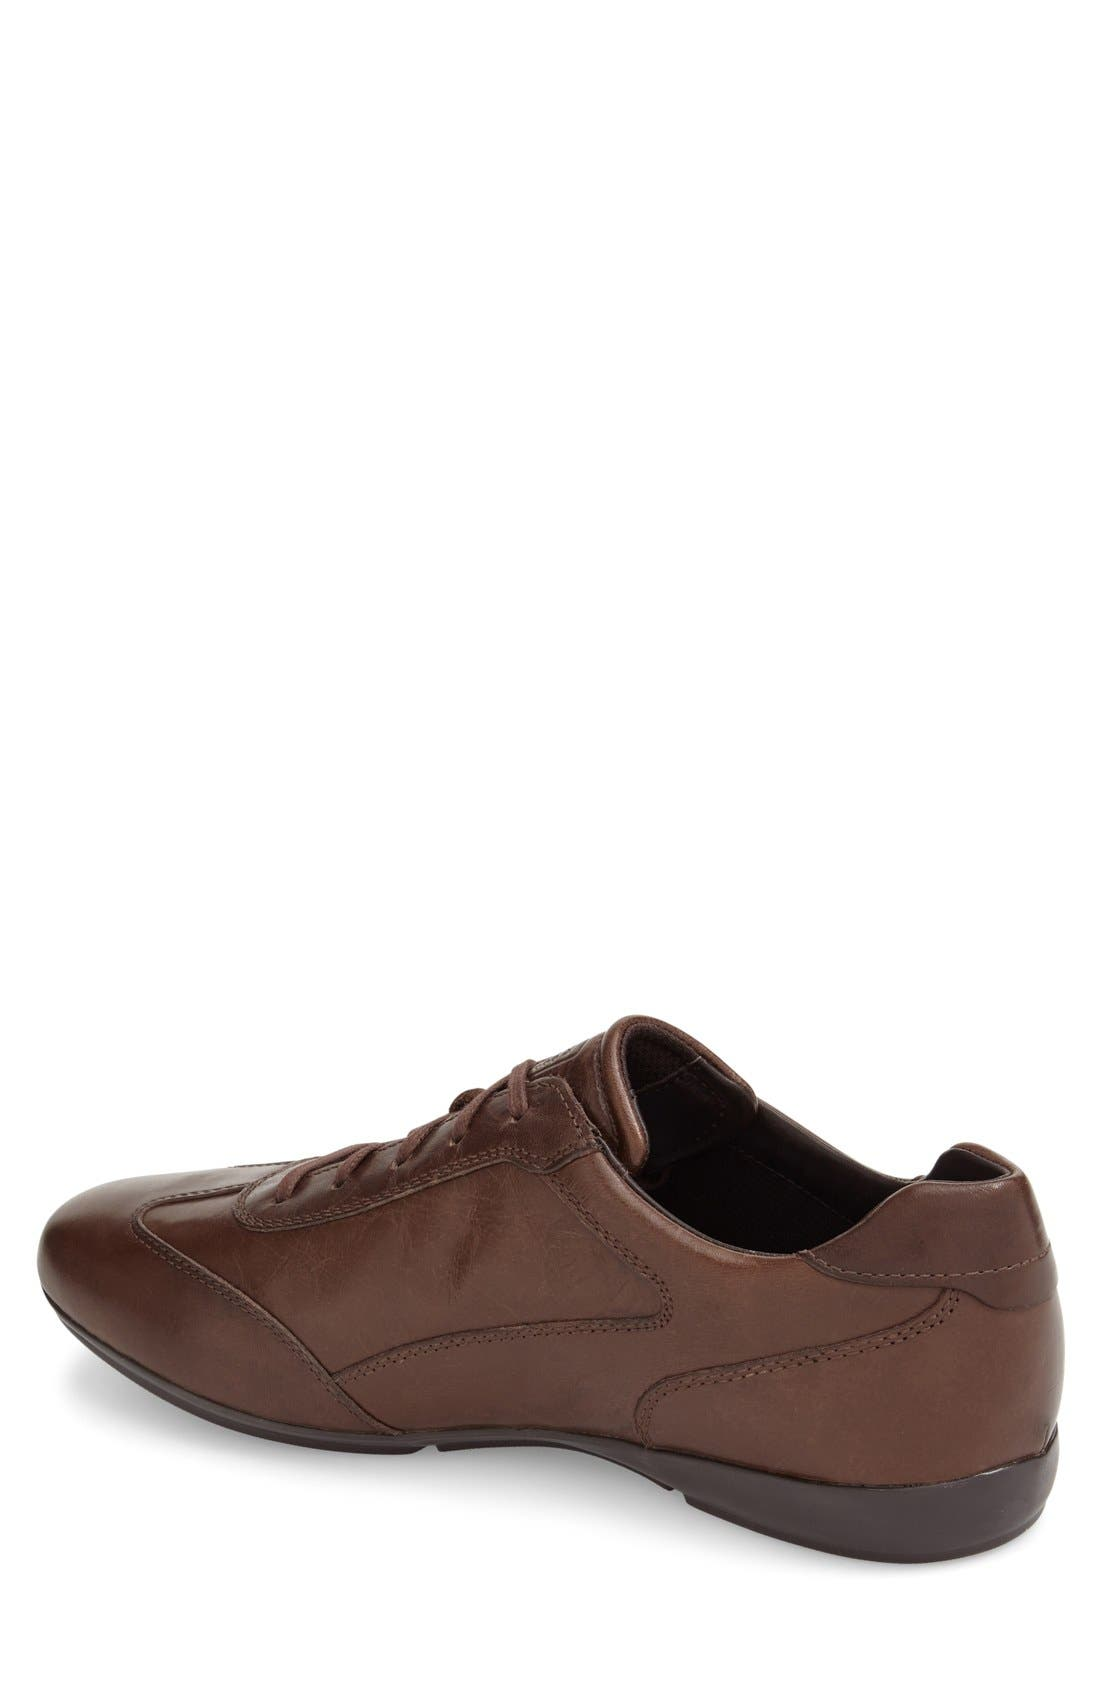 Alternate Image 4  - Geox Wing Tip Oxford (Men)